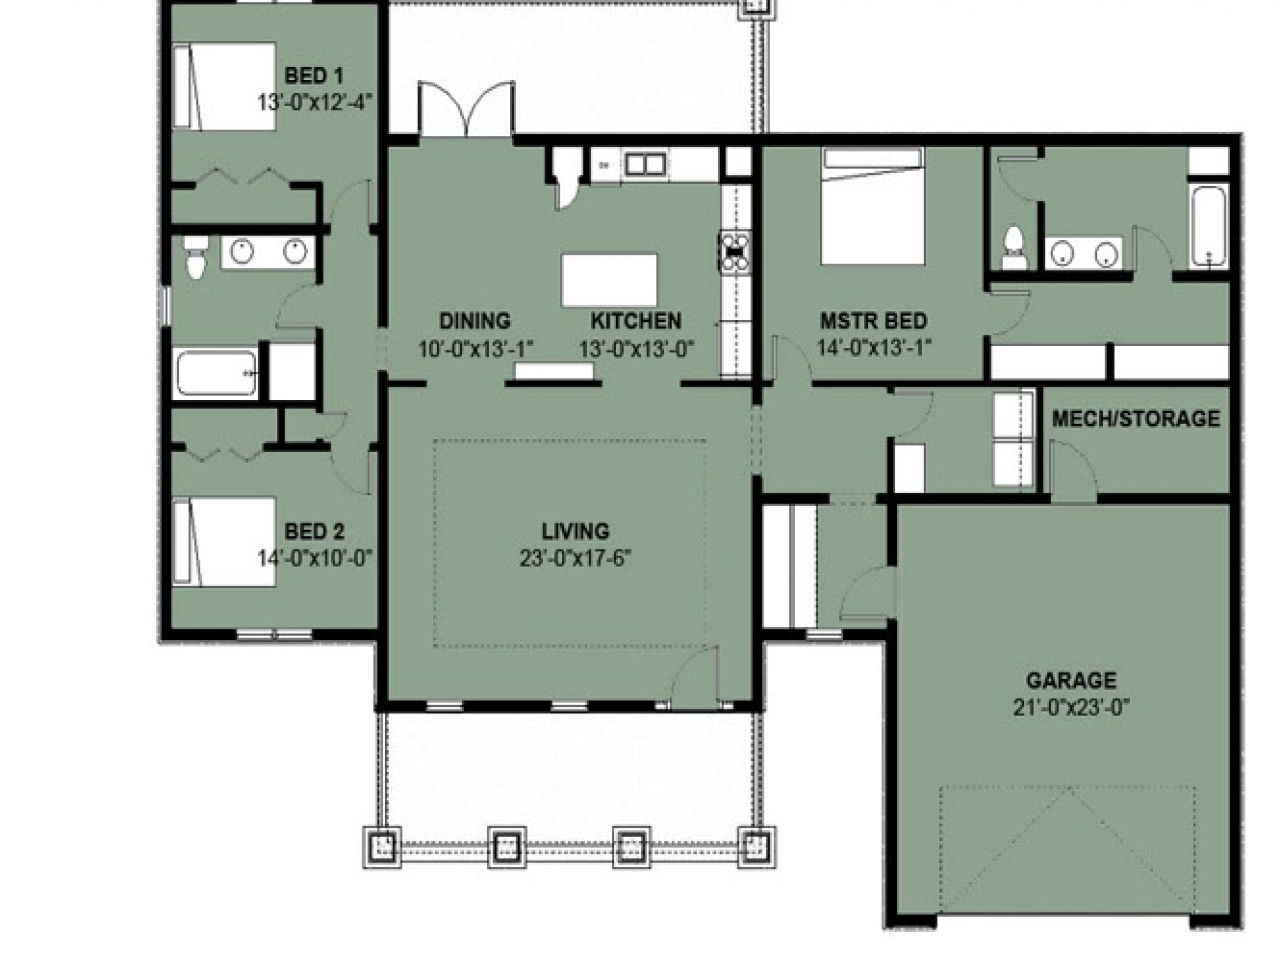 3 Bedroom 1 Floor Plans Simple 3 Bedroom House Floor Plans Caribbean Style House Plans